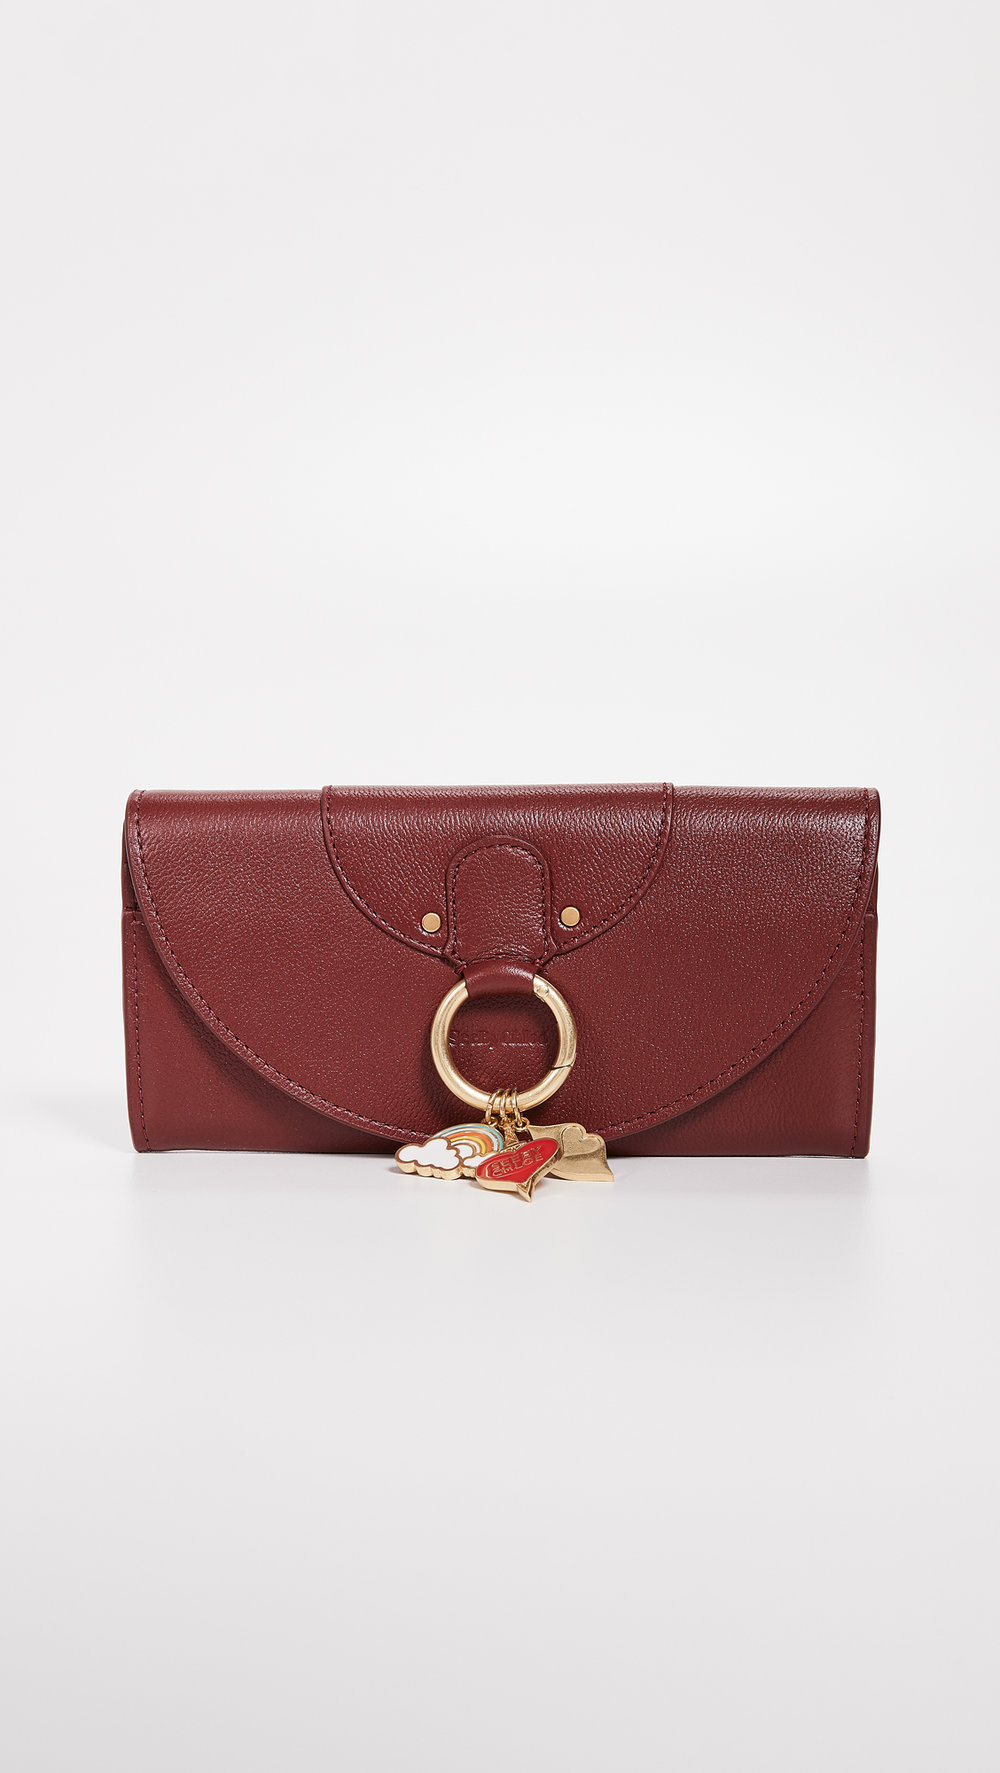 SEE BY CHLOE WALLET - The shade of this wallet is classic, perfect for someone who just likes to carry their wallet or always has a big purse! Also, who could pass up those cute little charms???